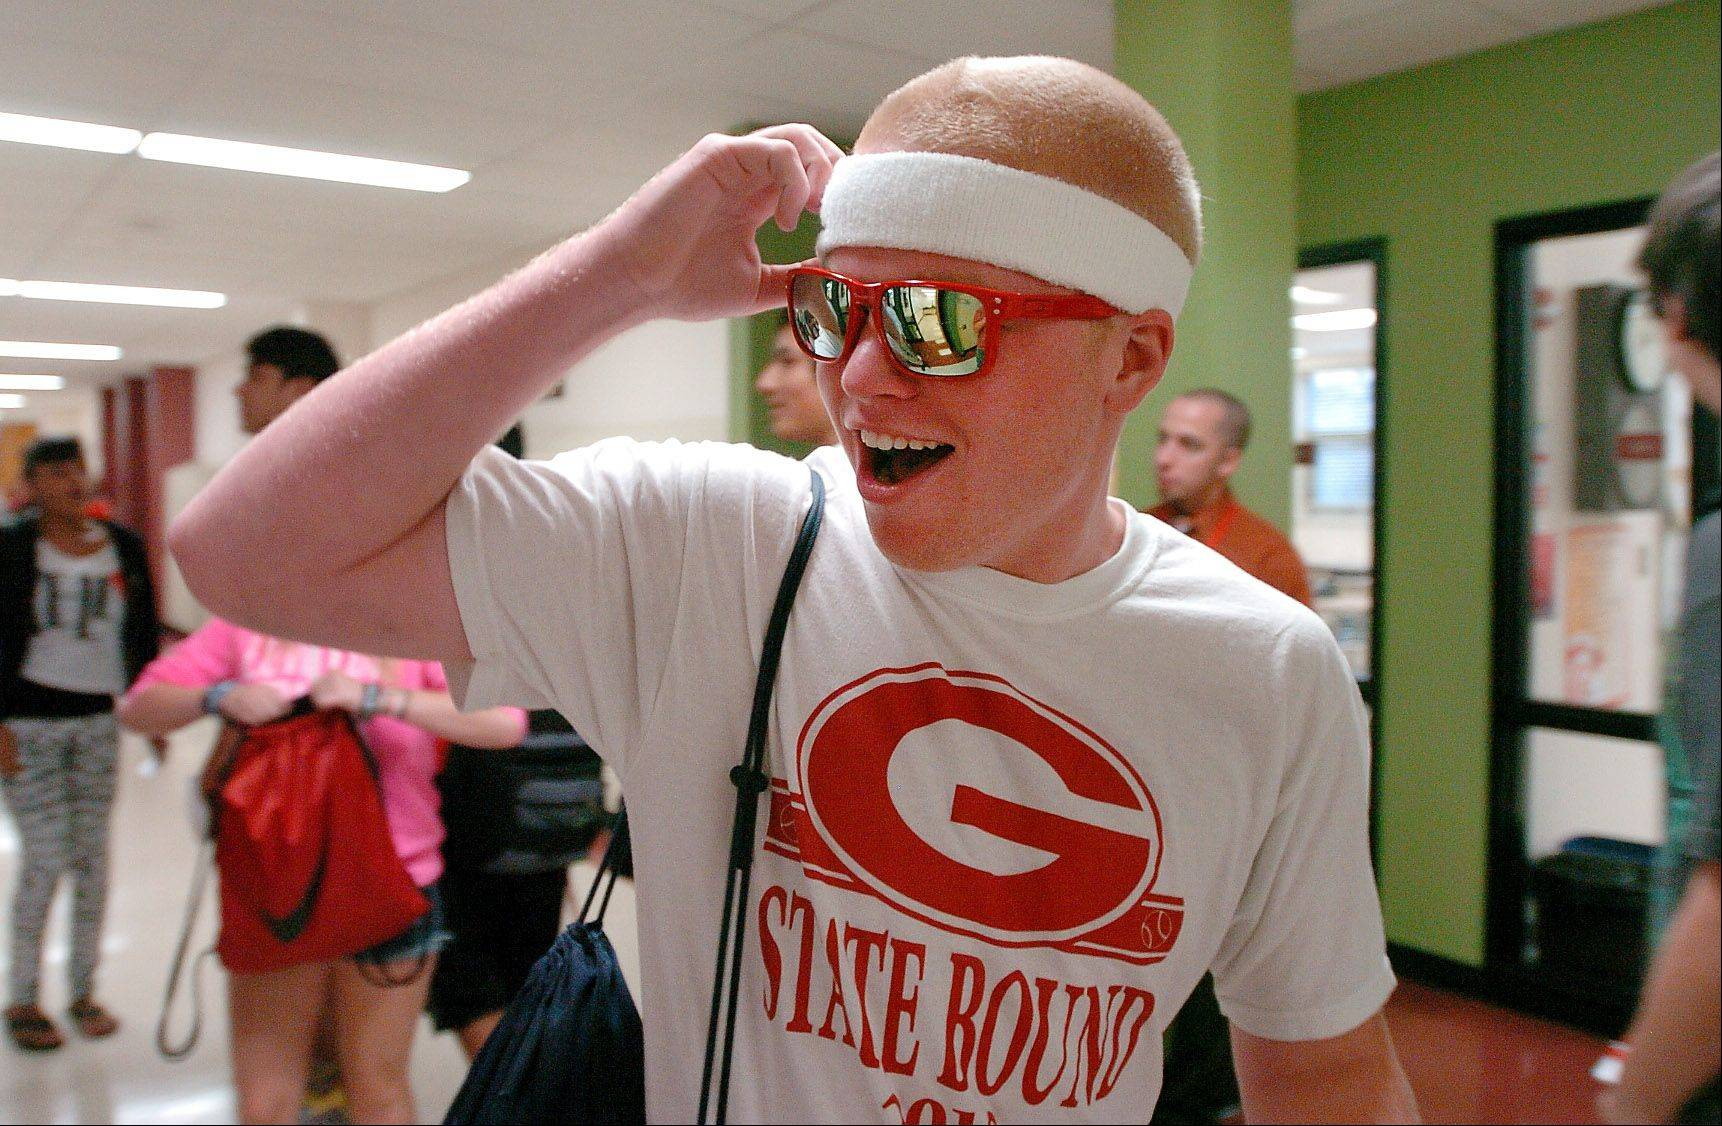 Senior Jacob Adams is ready to go during first day of classes at Grant Community High School in Fox Lake Wednesday.